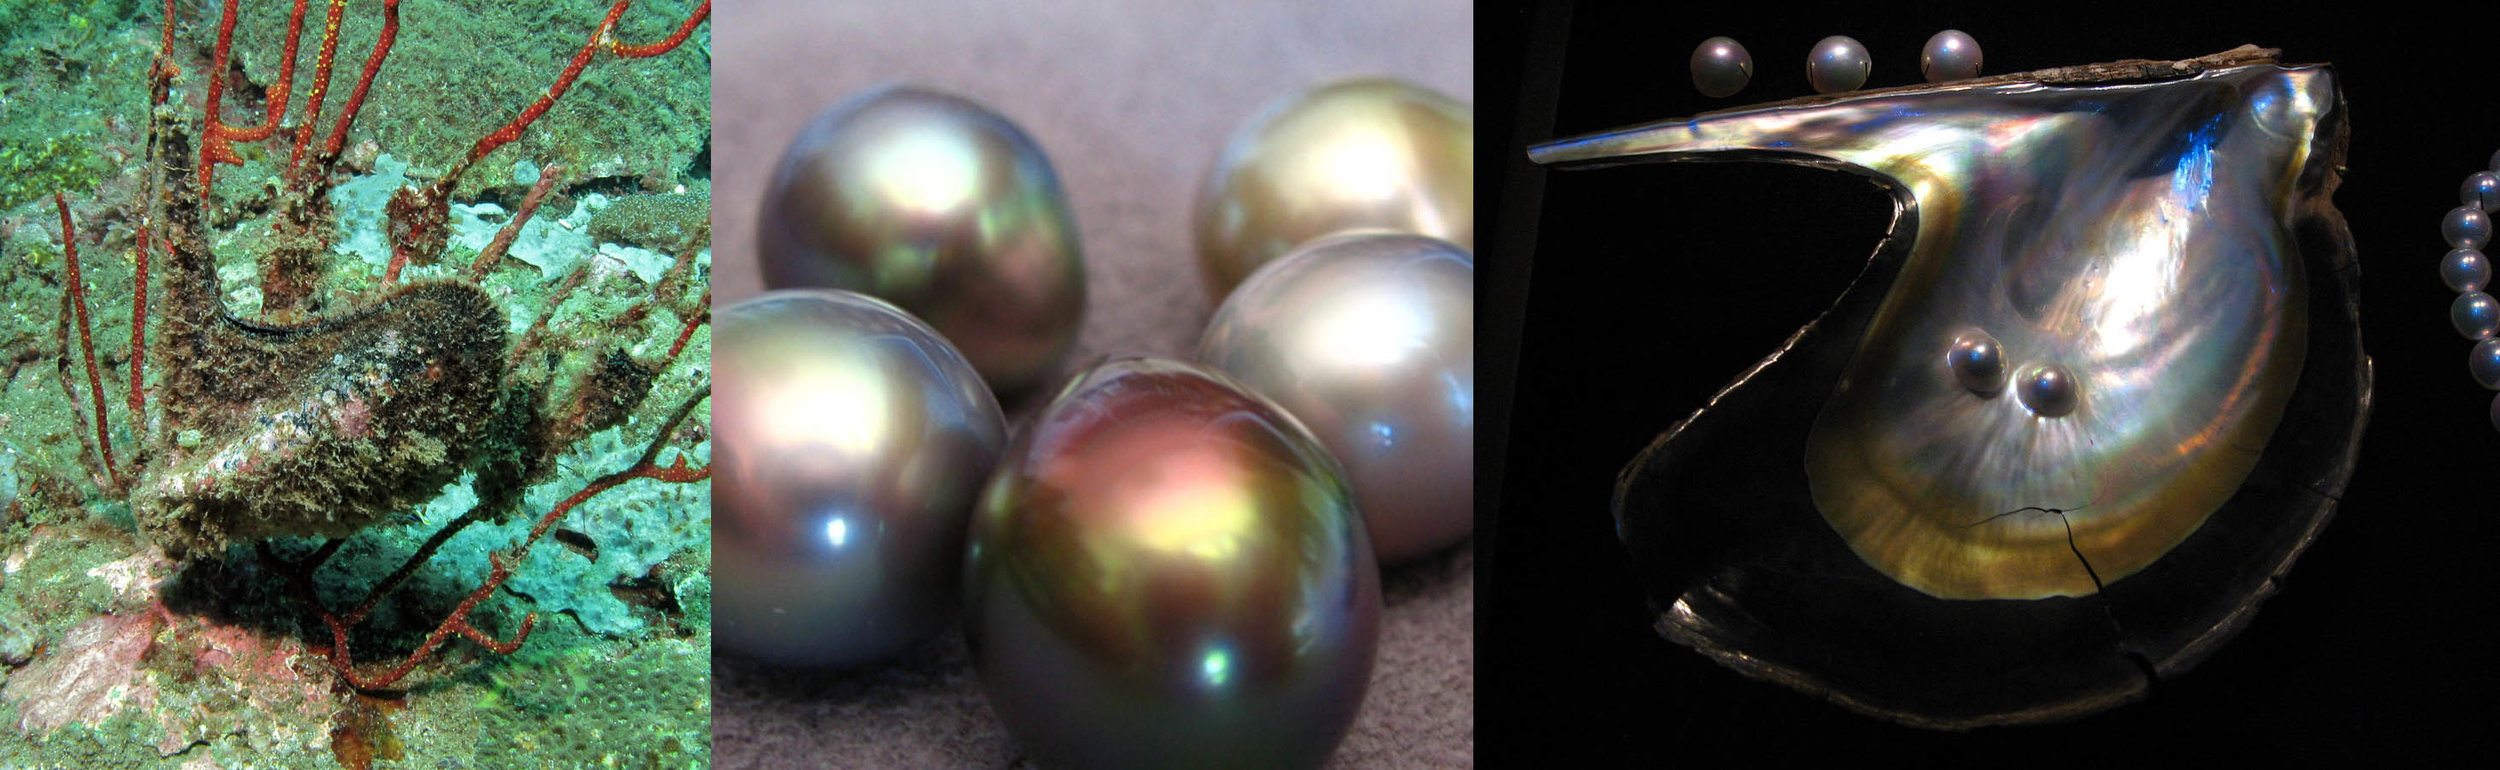 Left: A bivalvia attached to a coral in the gulf of California. Center: Baja pearls in a range of greys with orient-mirrored lusters. Right: The shell of the Baja bivalve has an exaggerated arm that it attaches itself to coral, rock and seabeds with.